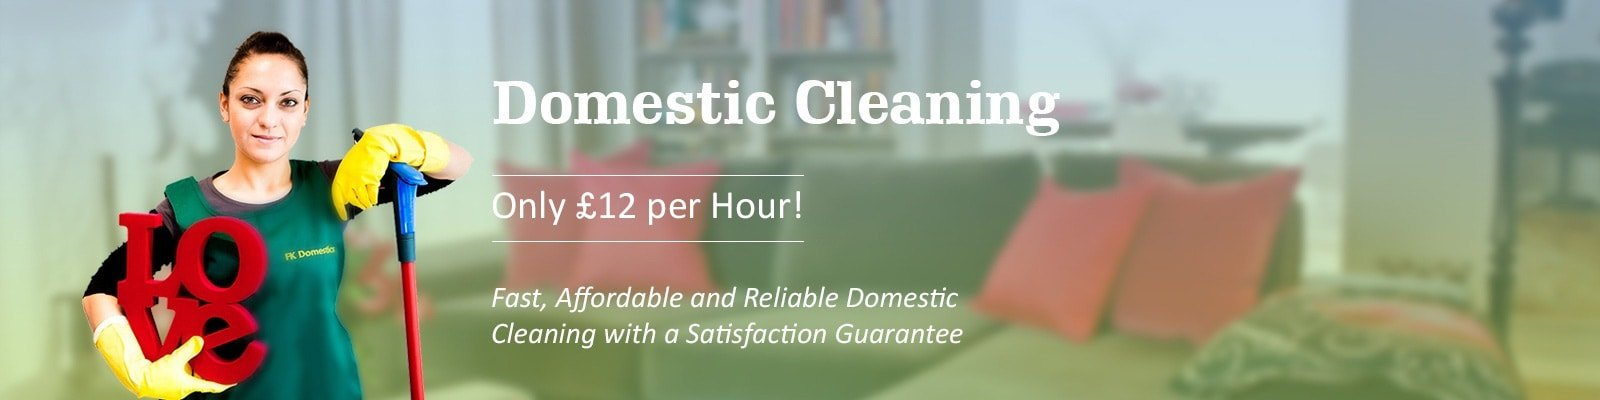 Domestic Cleaning Slide